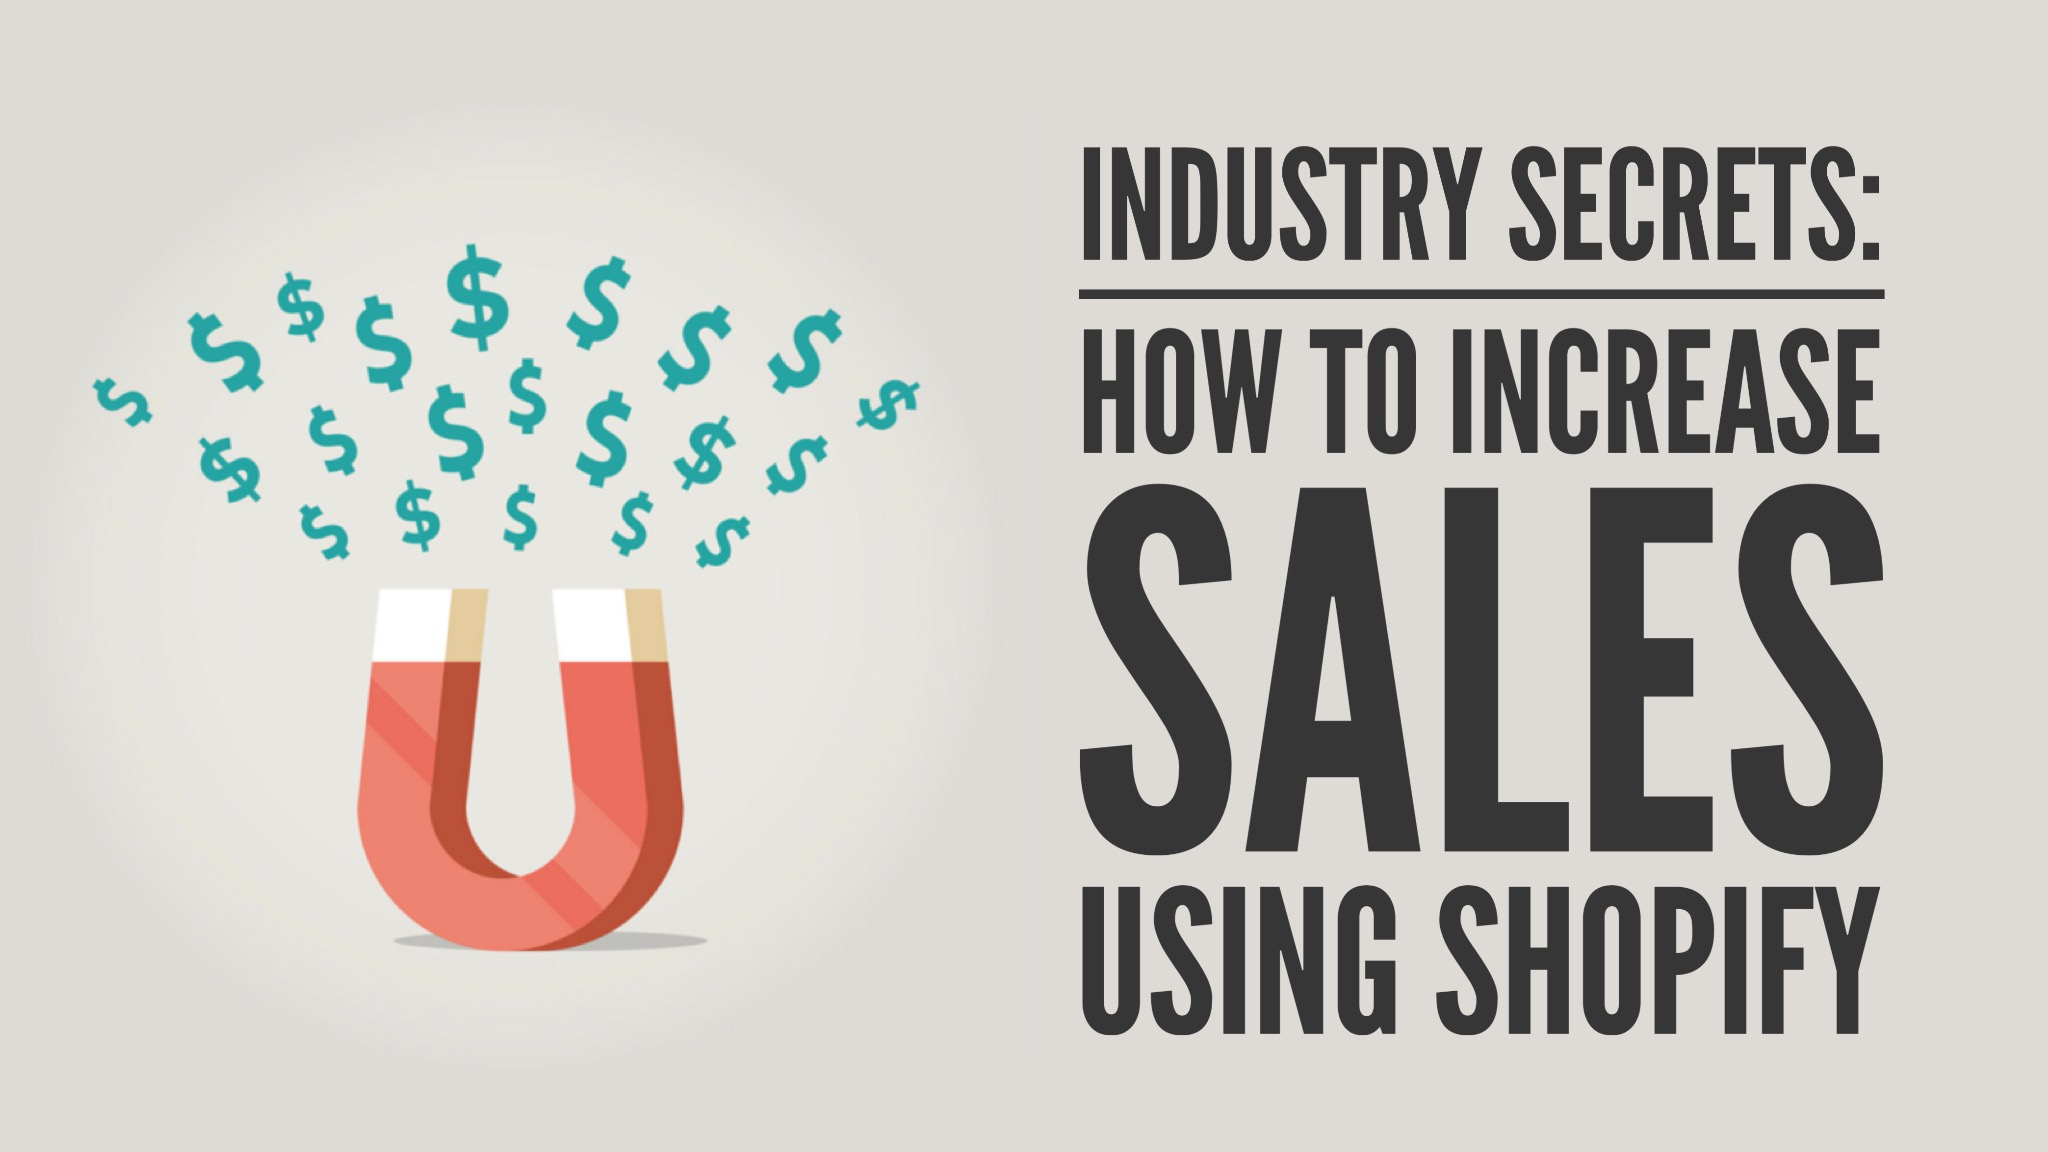 The Kingdom Industry Secrets: How to Increase Sales Using Shopify